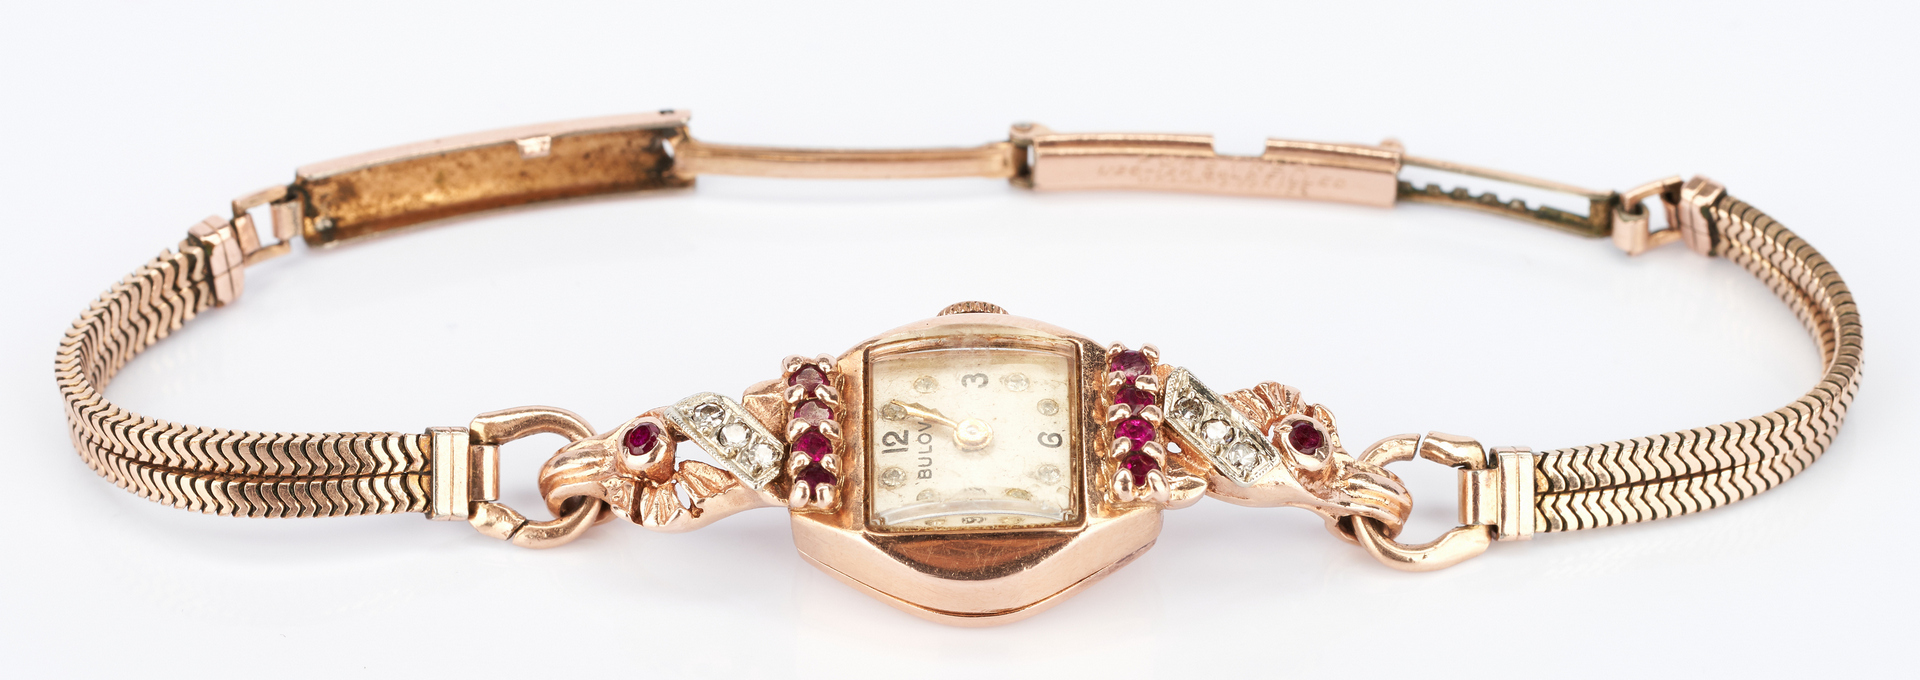 Lot 1035: 2 14K Bulova watches, one in rose gold with